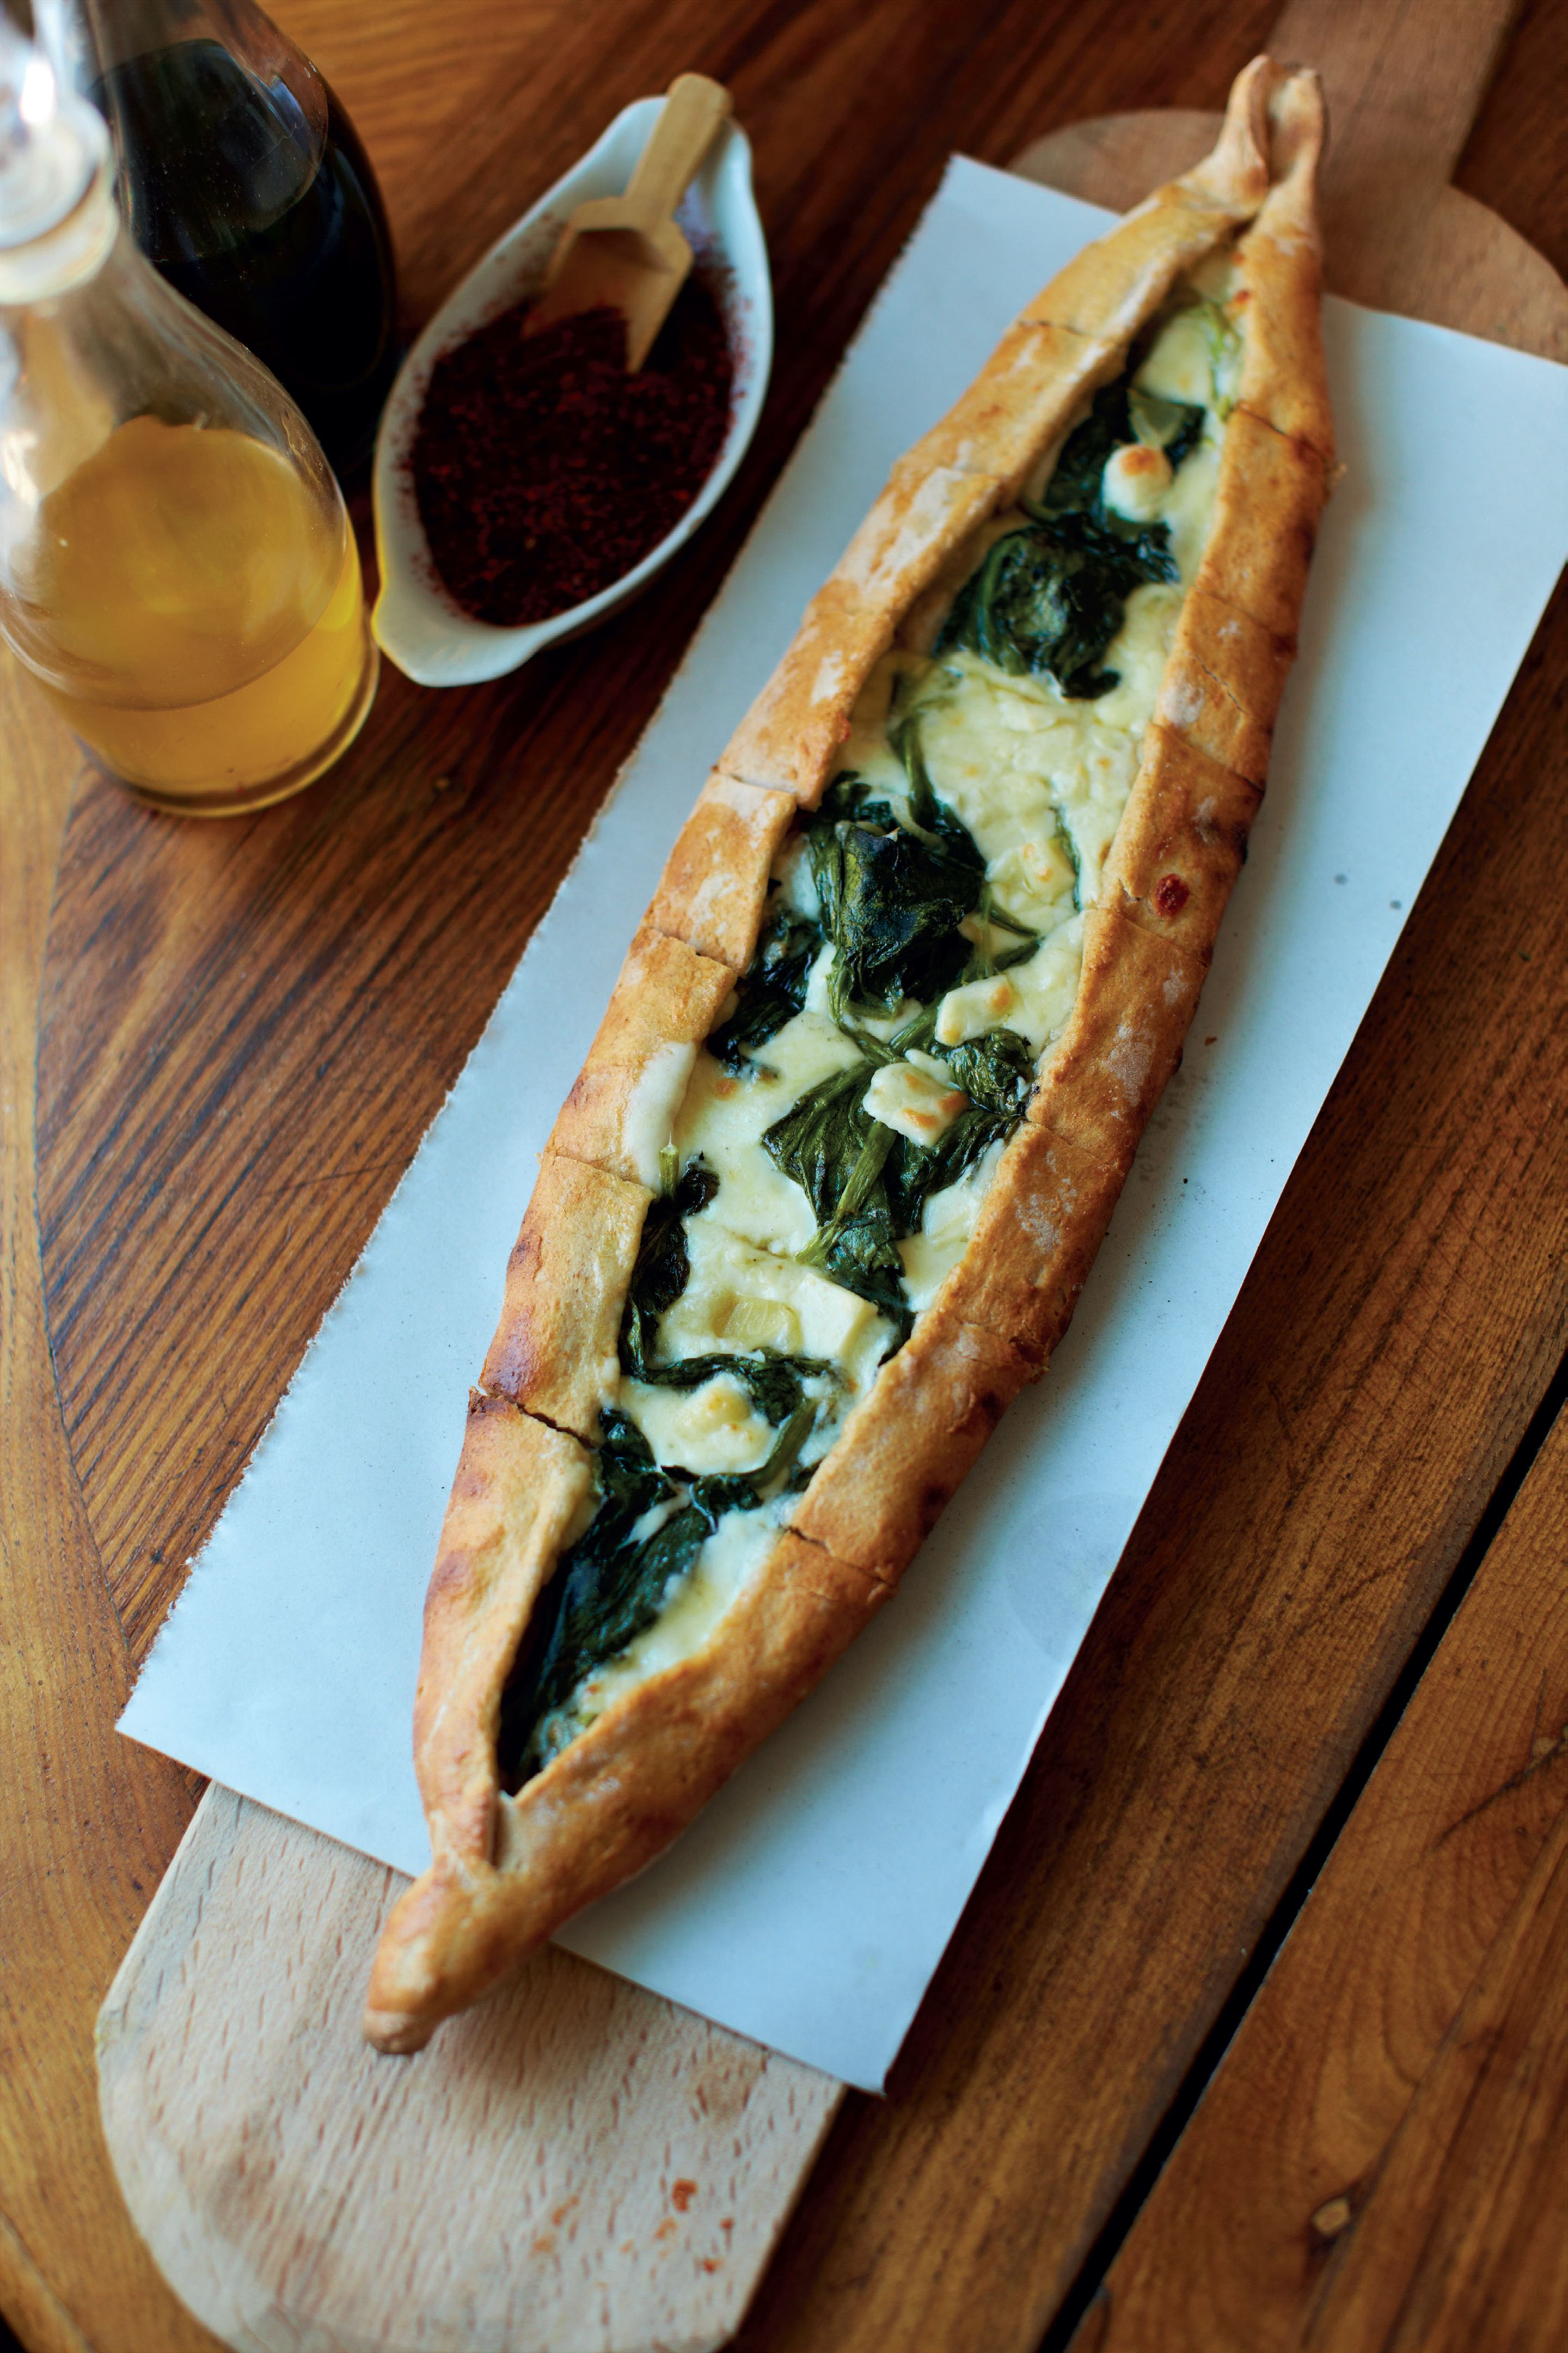 Cheese pide, and spinach and cheese pide